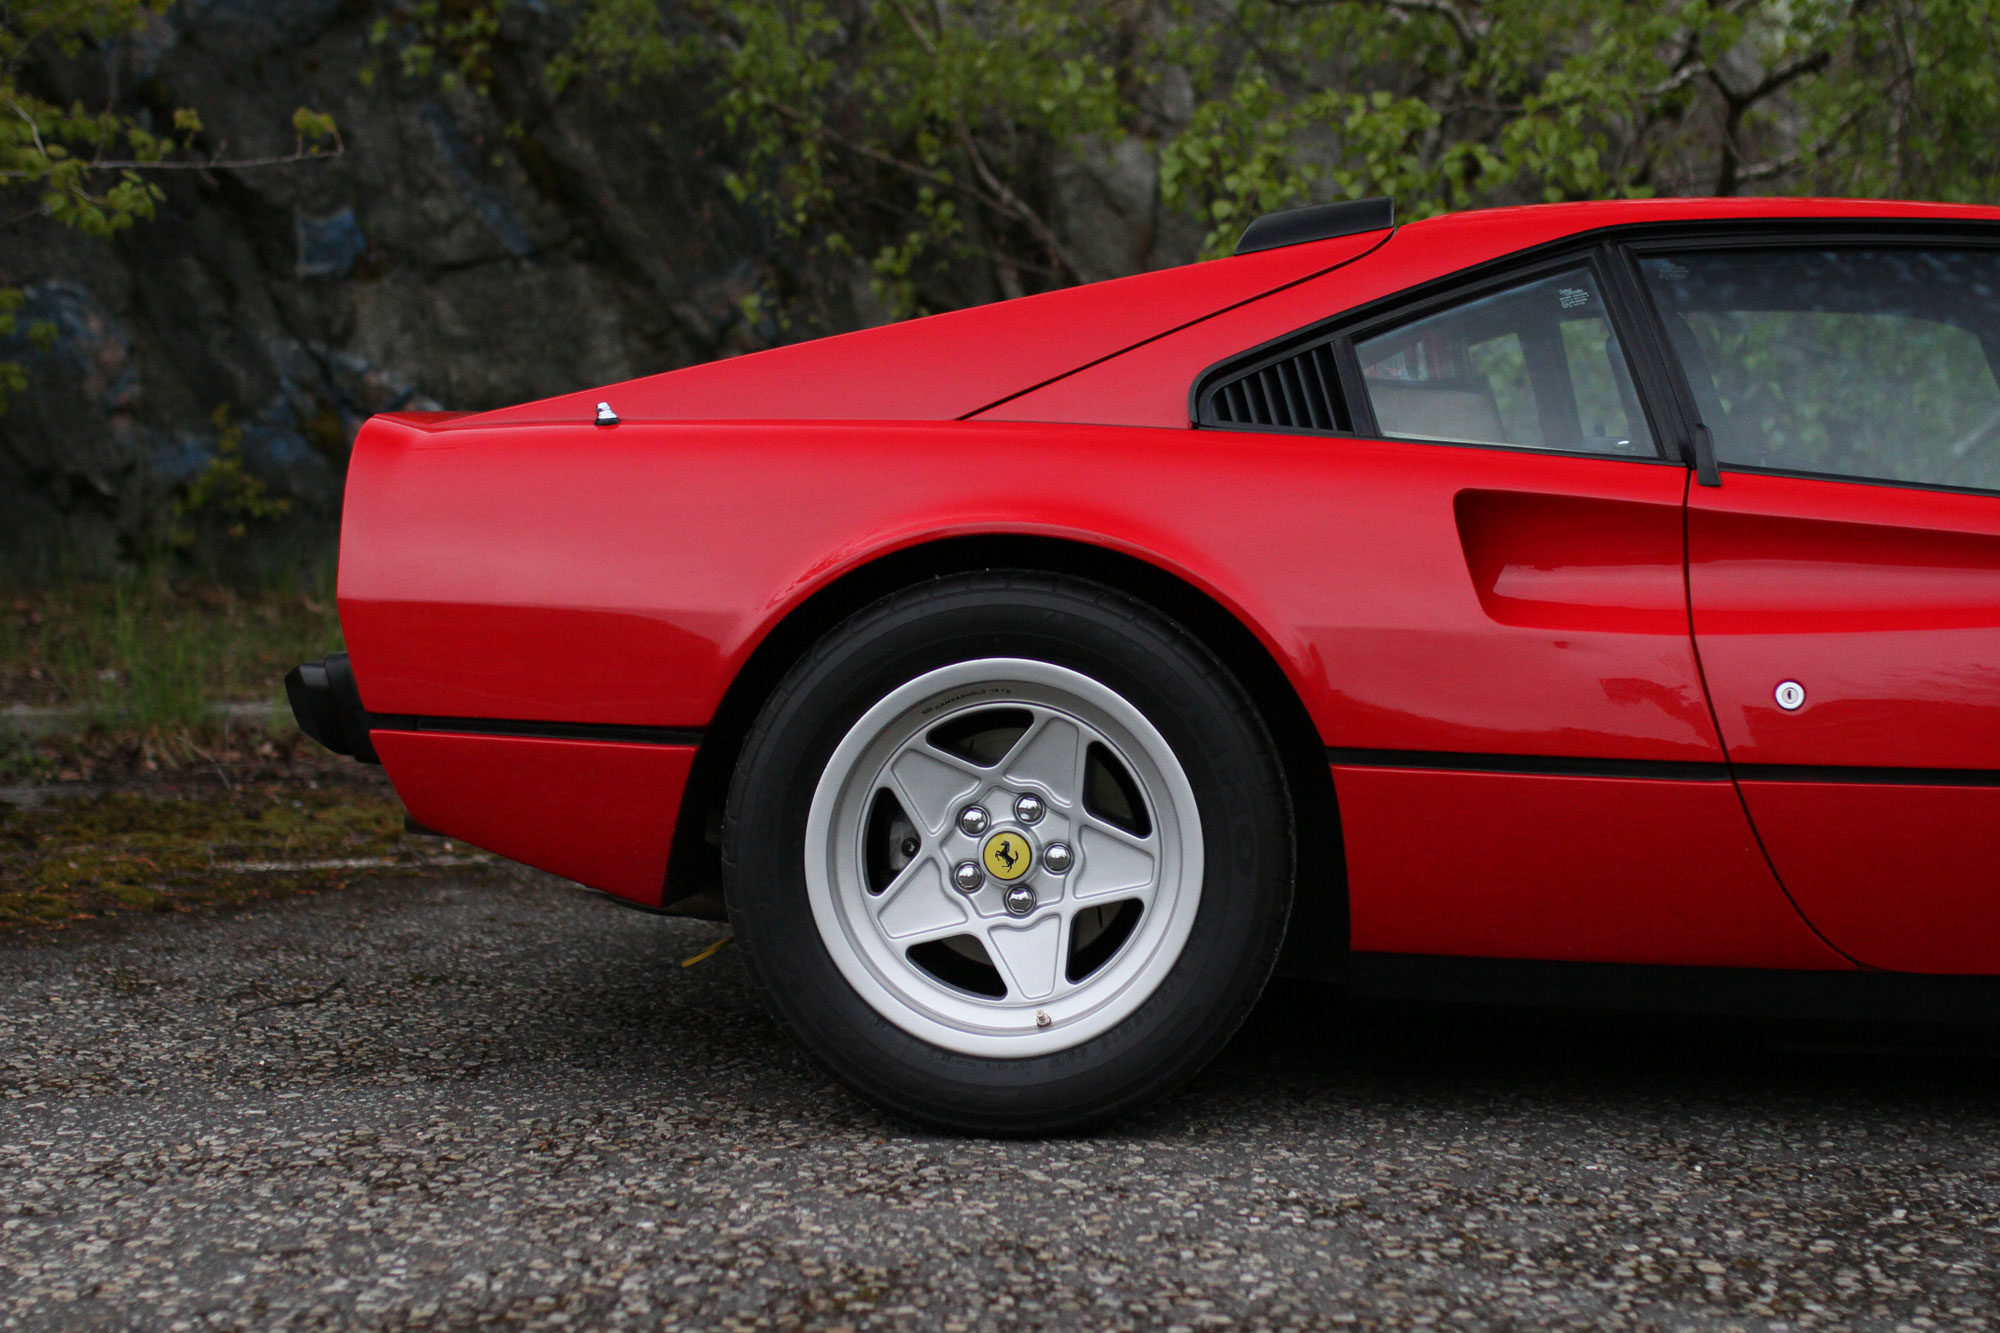 The right behind of the red Ferrari 308